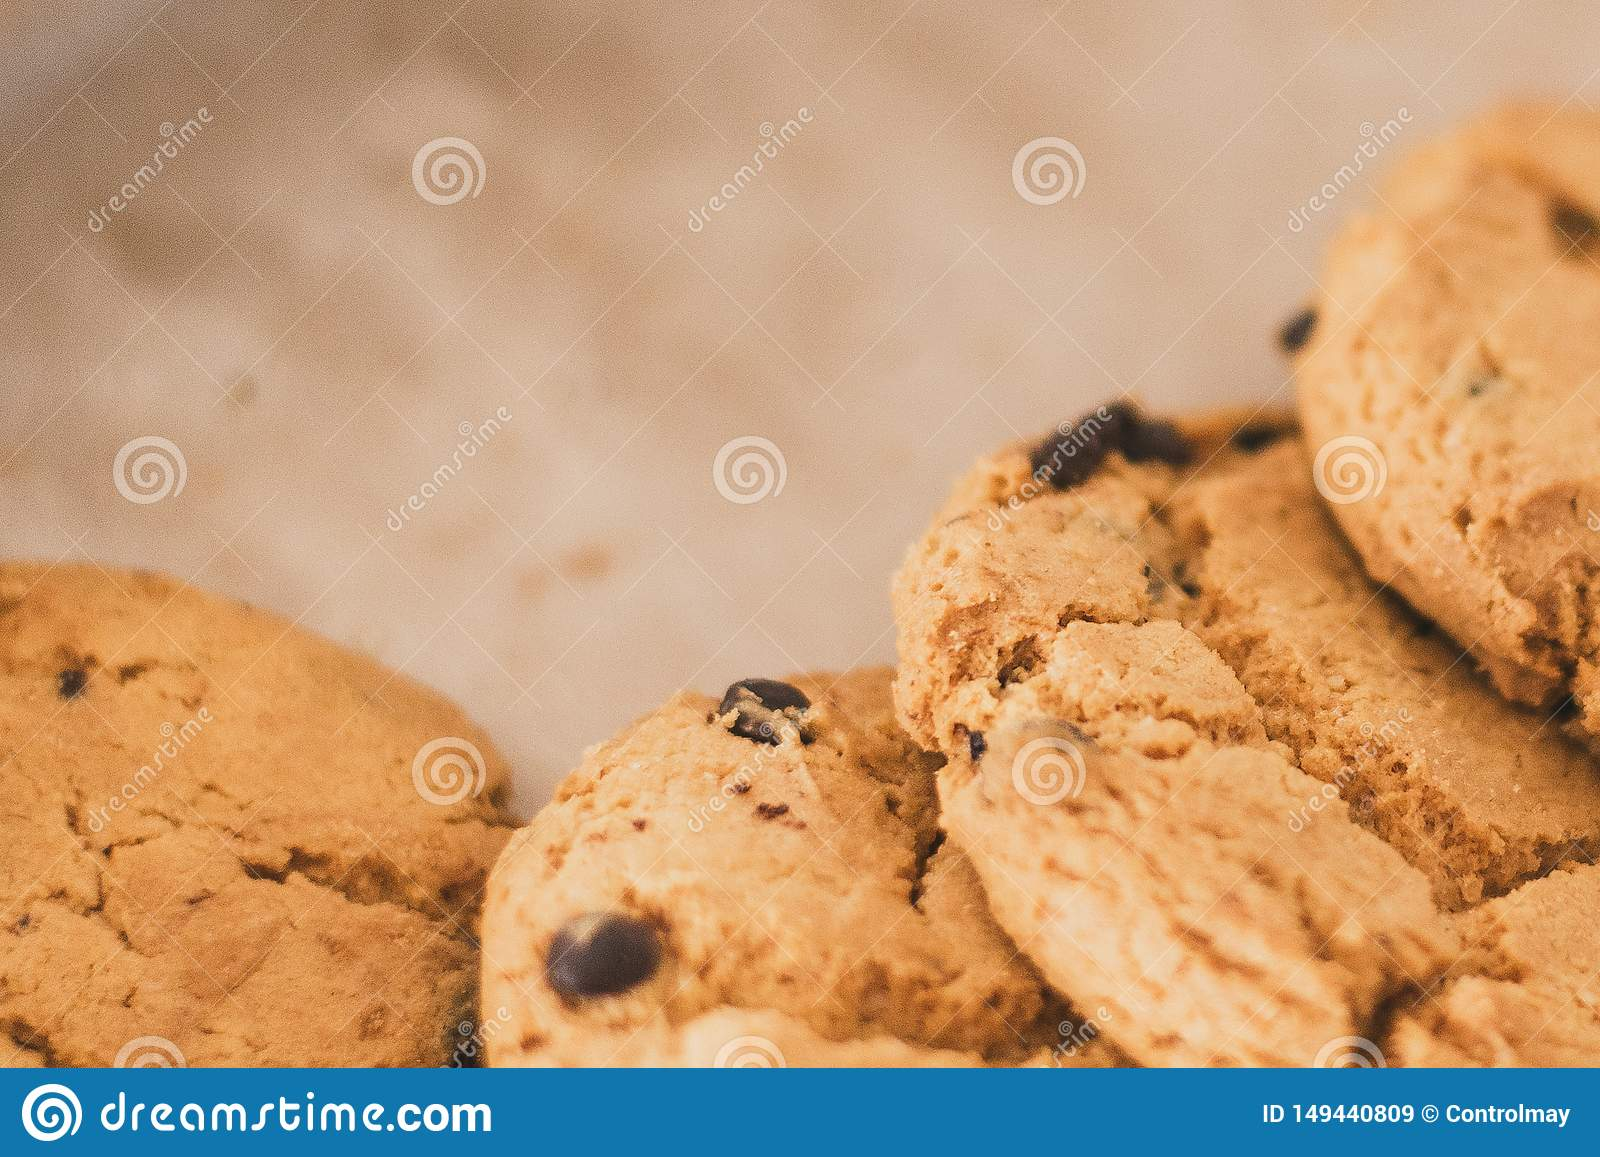 cookies with chocolate in the plate. chocolate chips on cookies close to the lens